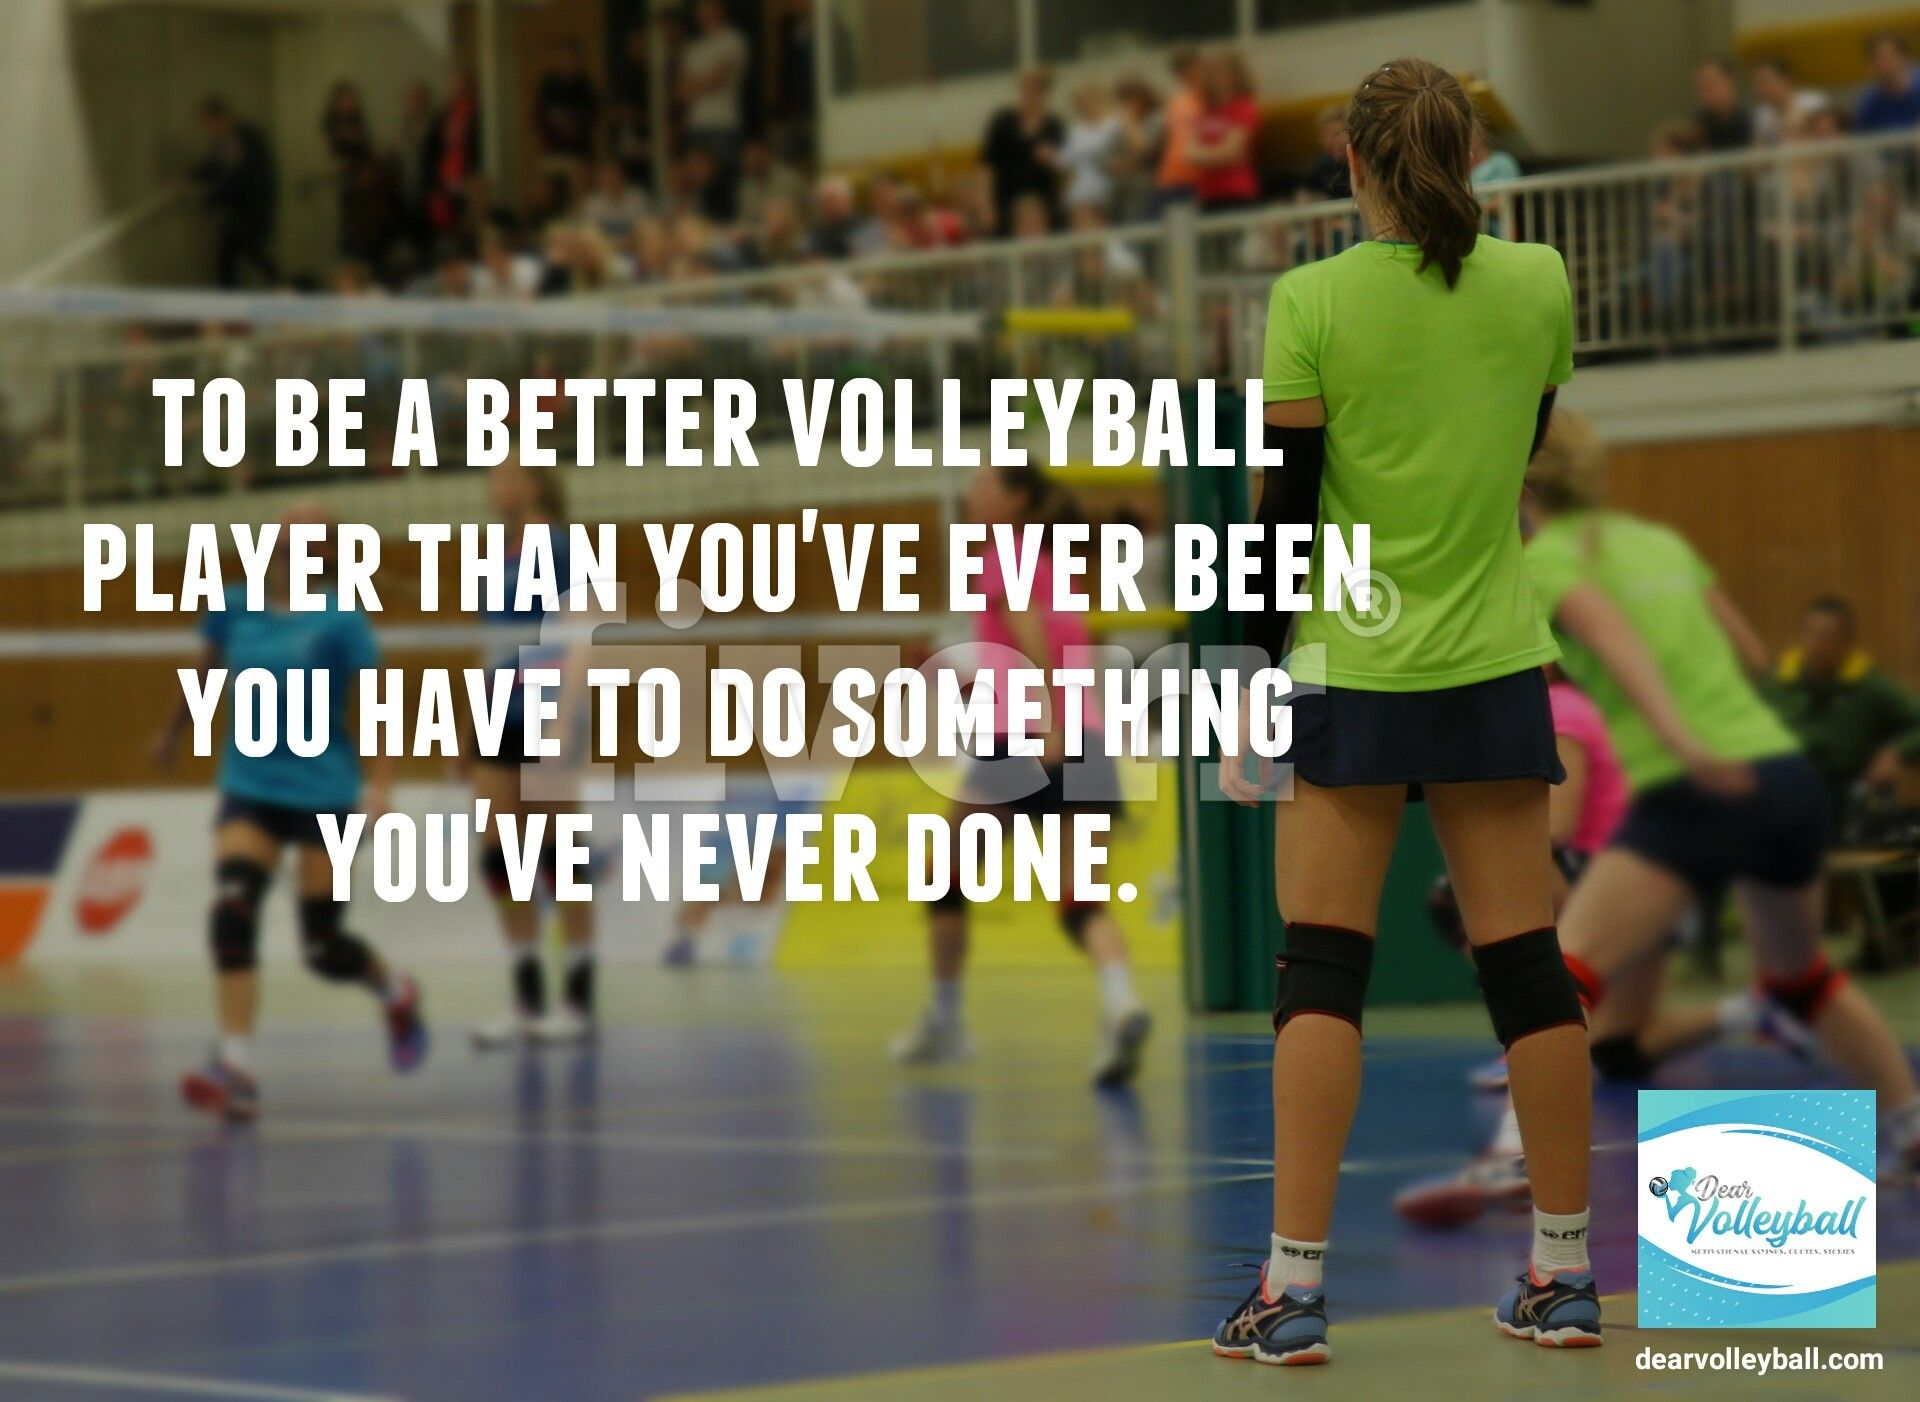 75 Volleyball Motivational Quotes And Images That Inspire Success Sports Quotes Volleyball Quotes Motivational Quotes